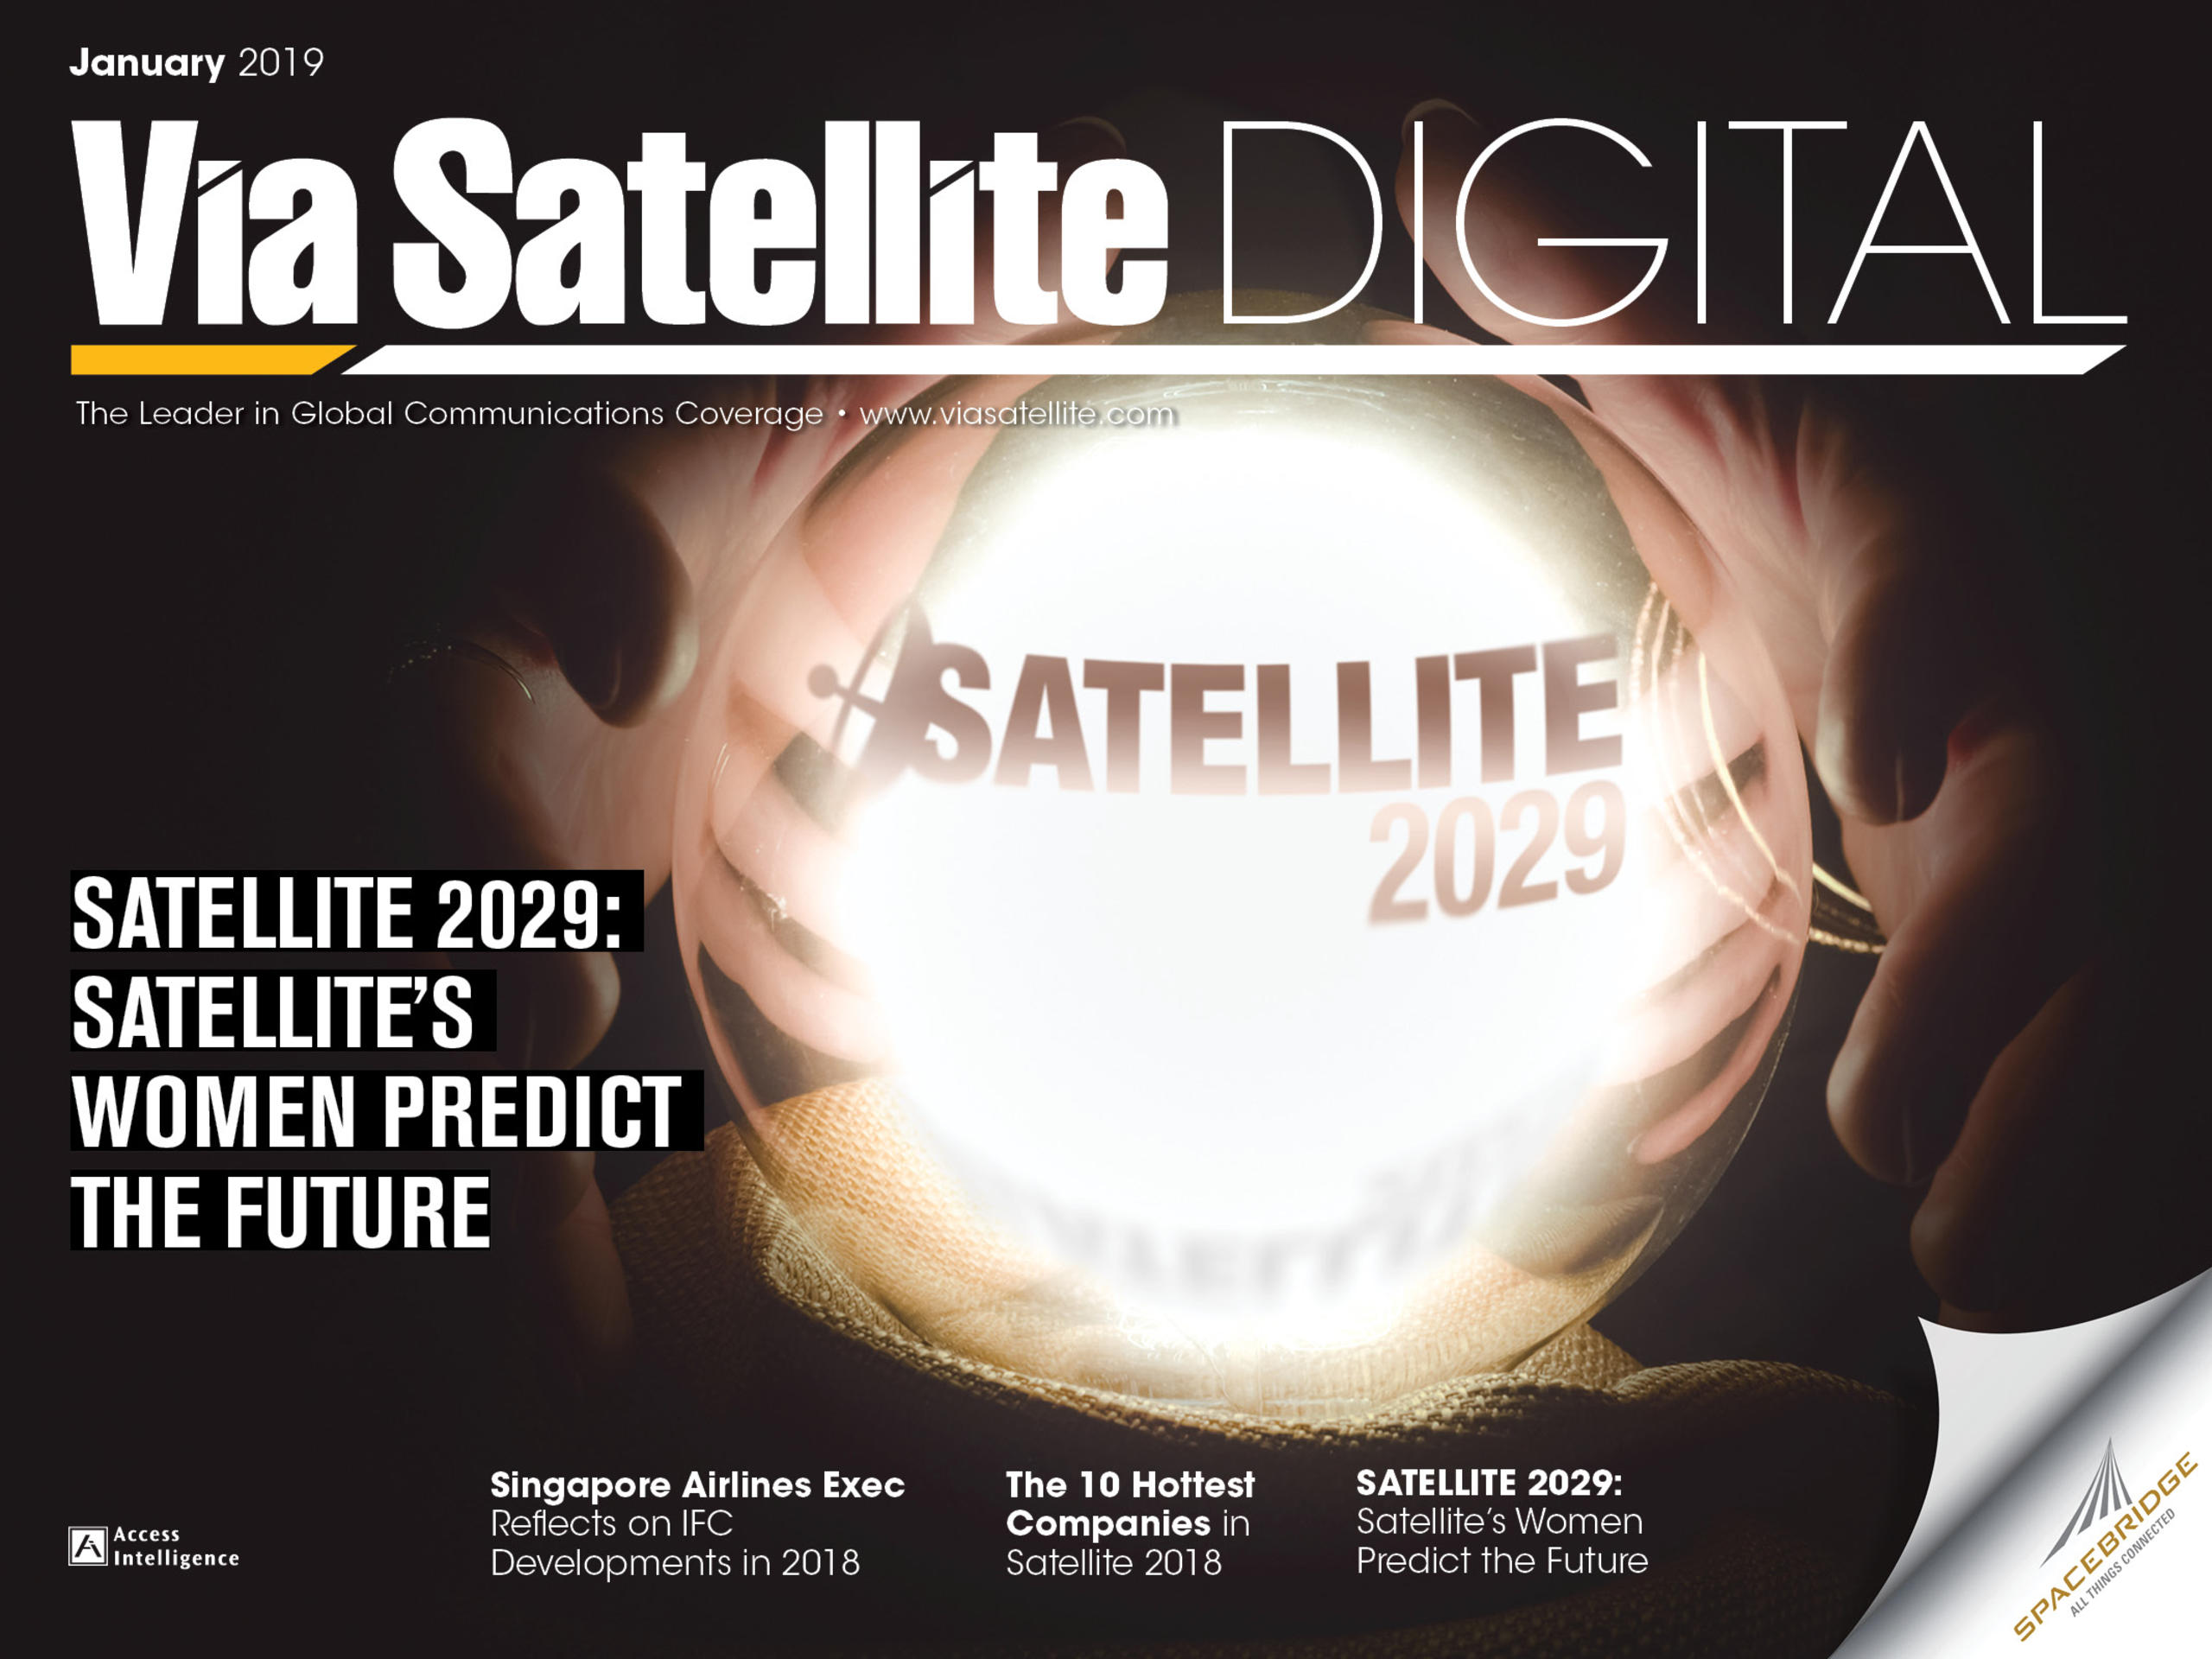 January 2019 - The 10 Hottest Companies in Satellite 2018